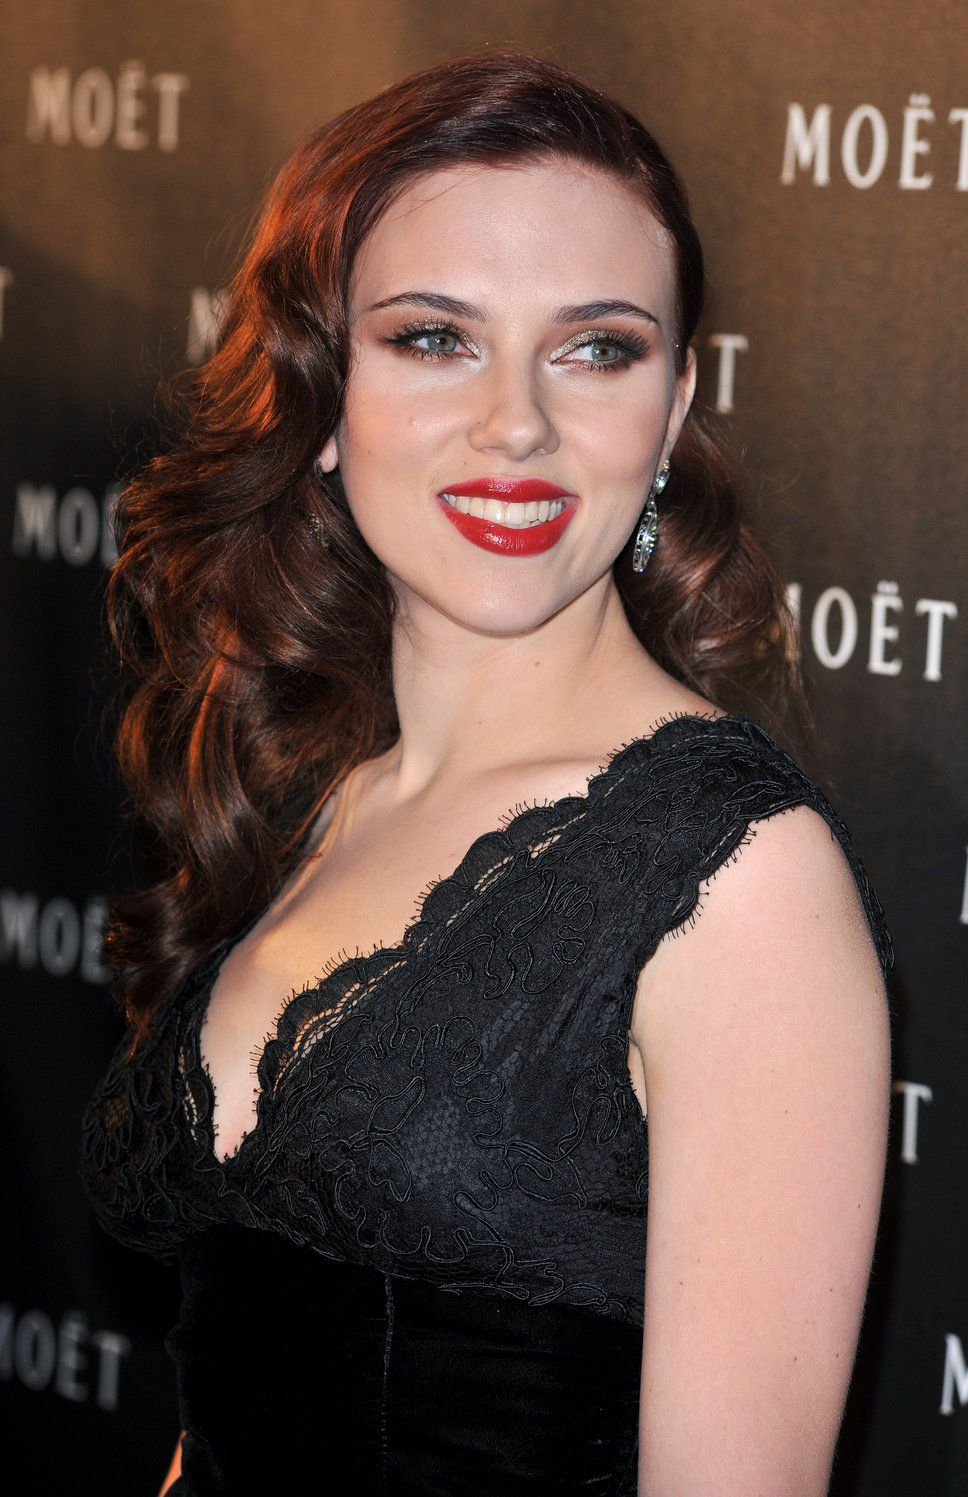 Black dress hairstyle - Johansson Red Lips Lace Black Dress Brown Hair Smokey Eyes Look Alike